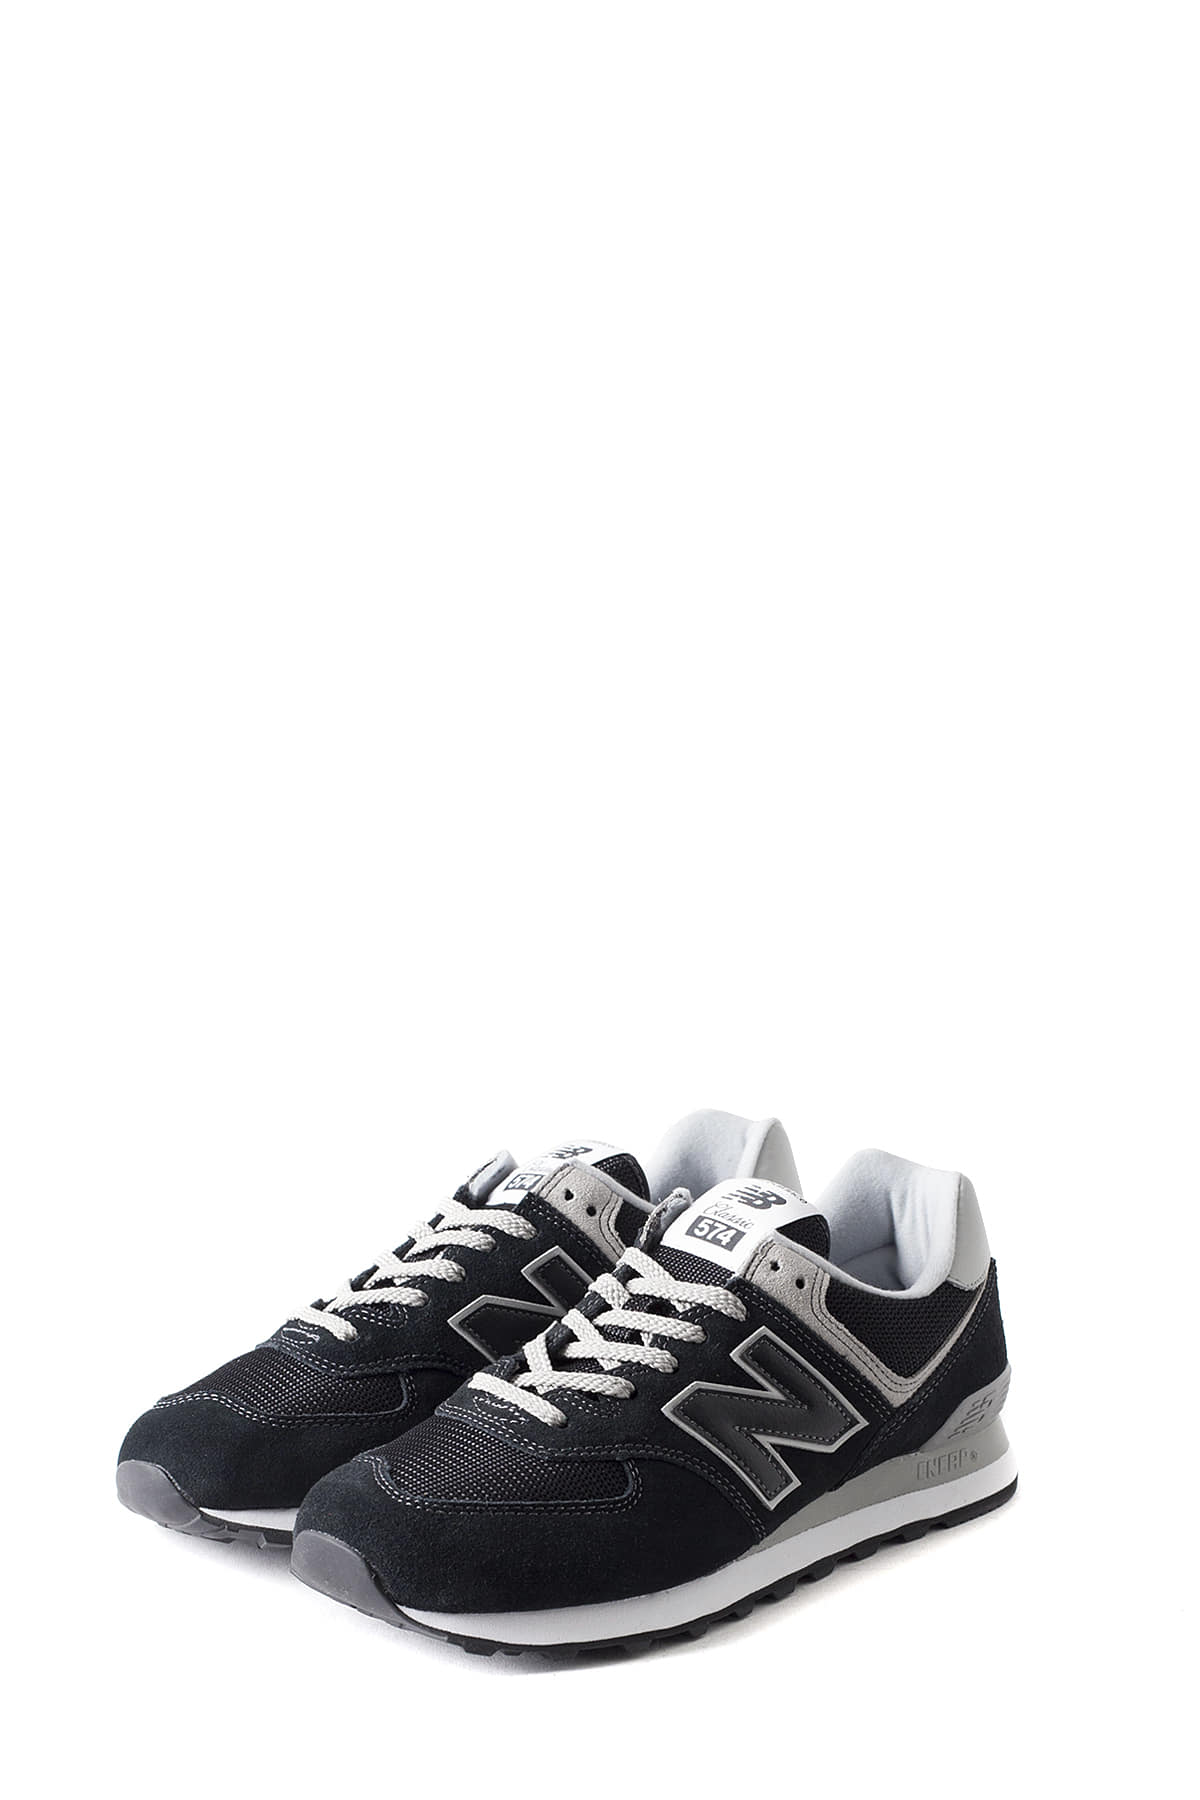 New Balance : ML574 (Black)